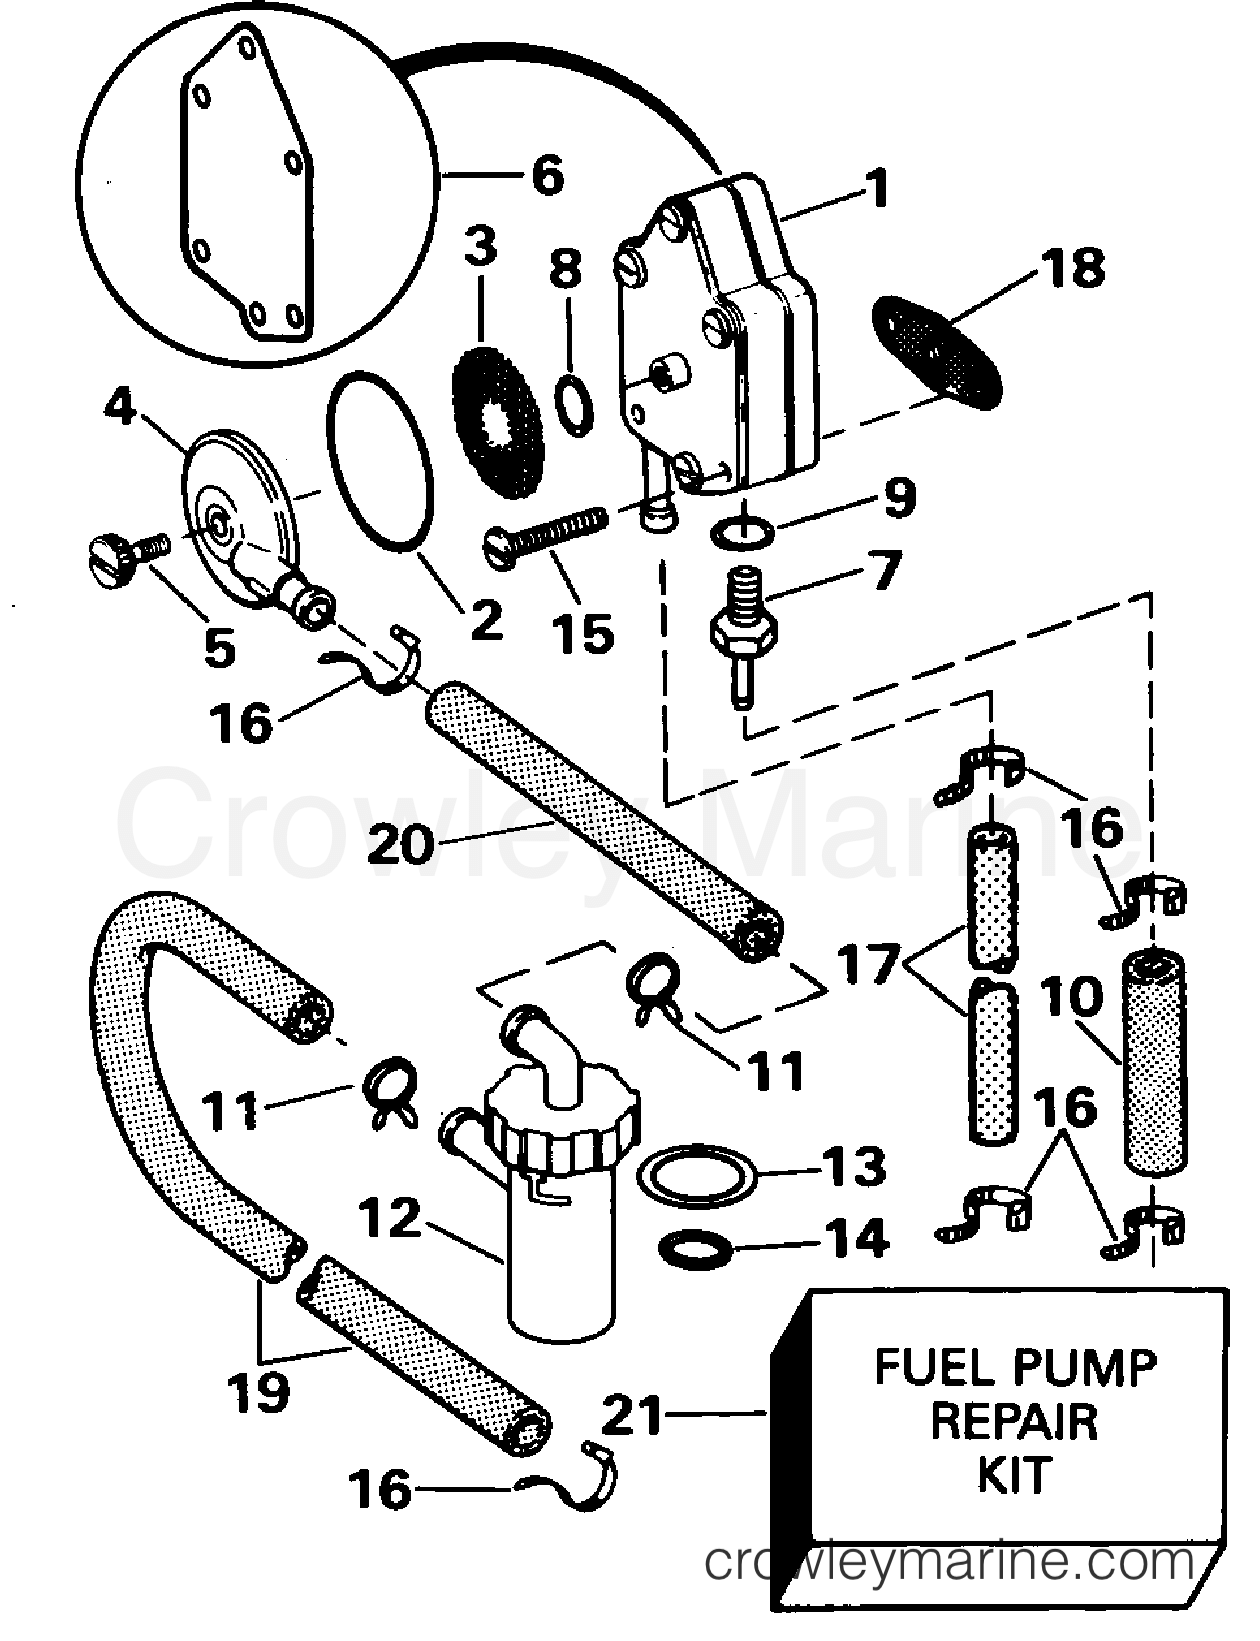 hight resolution of 1995 evinrude outboards 25 e25rweos fuel pump section